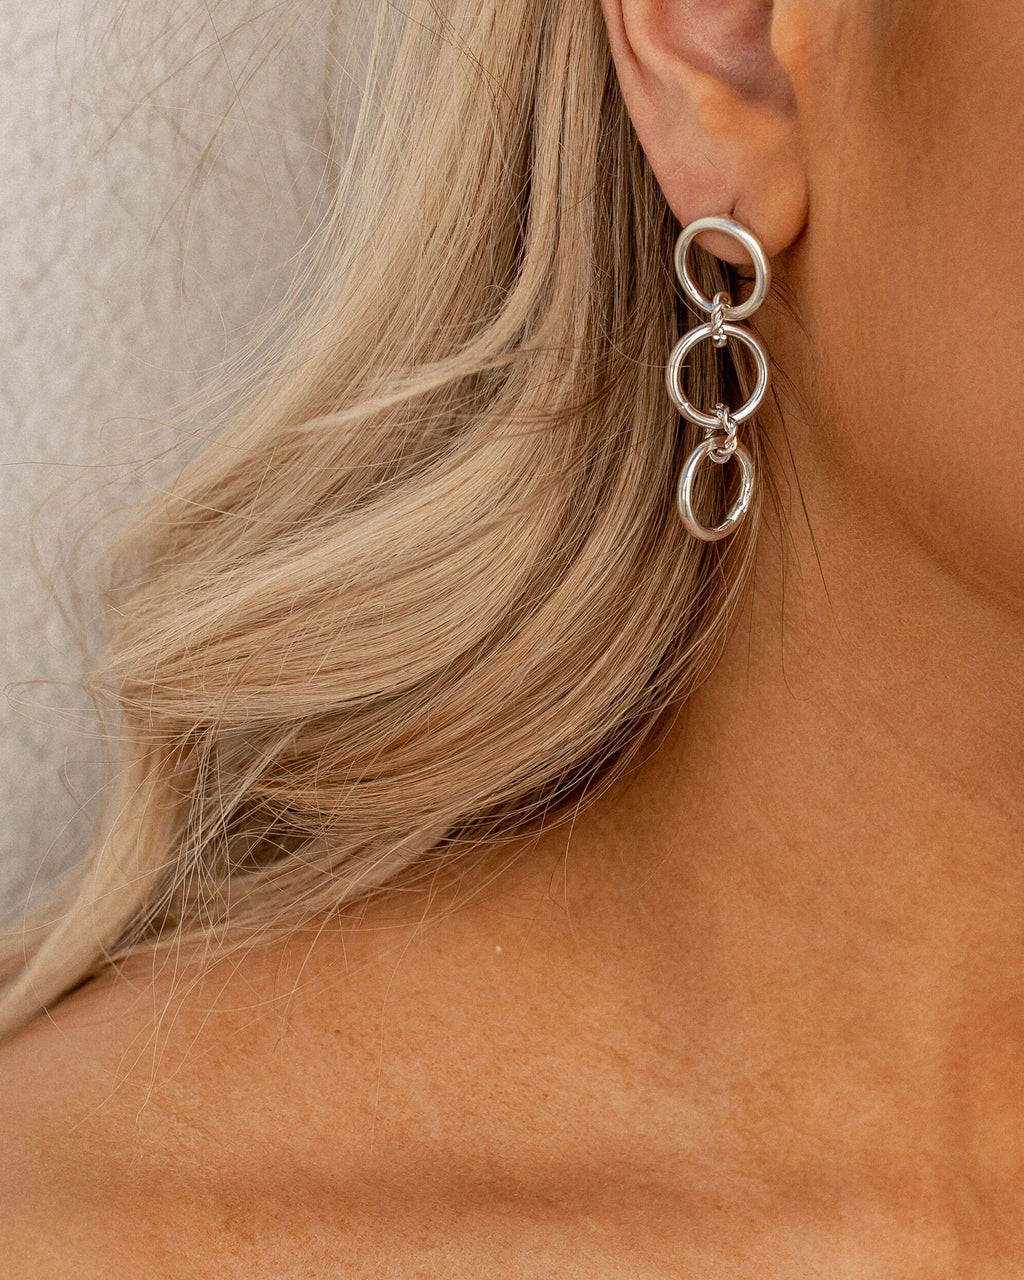 Frosty White Trio Hoop Earrings